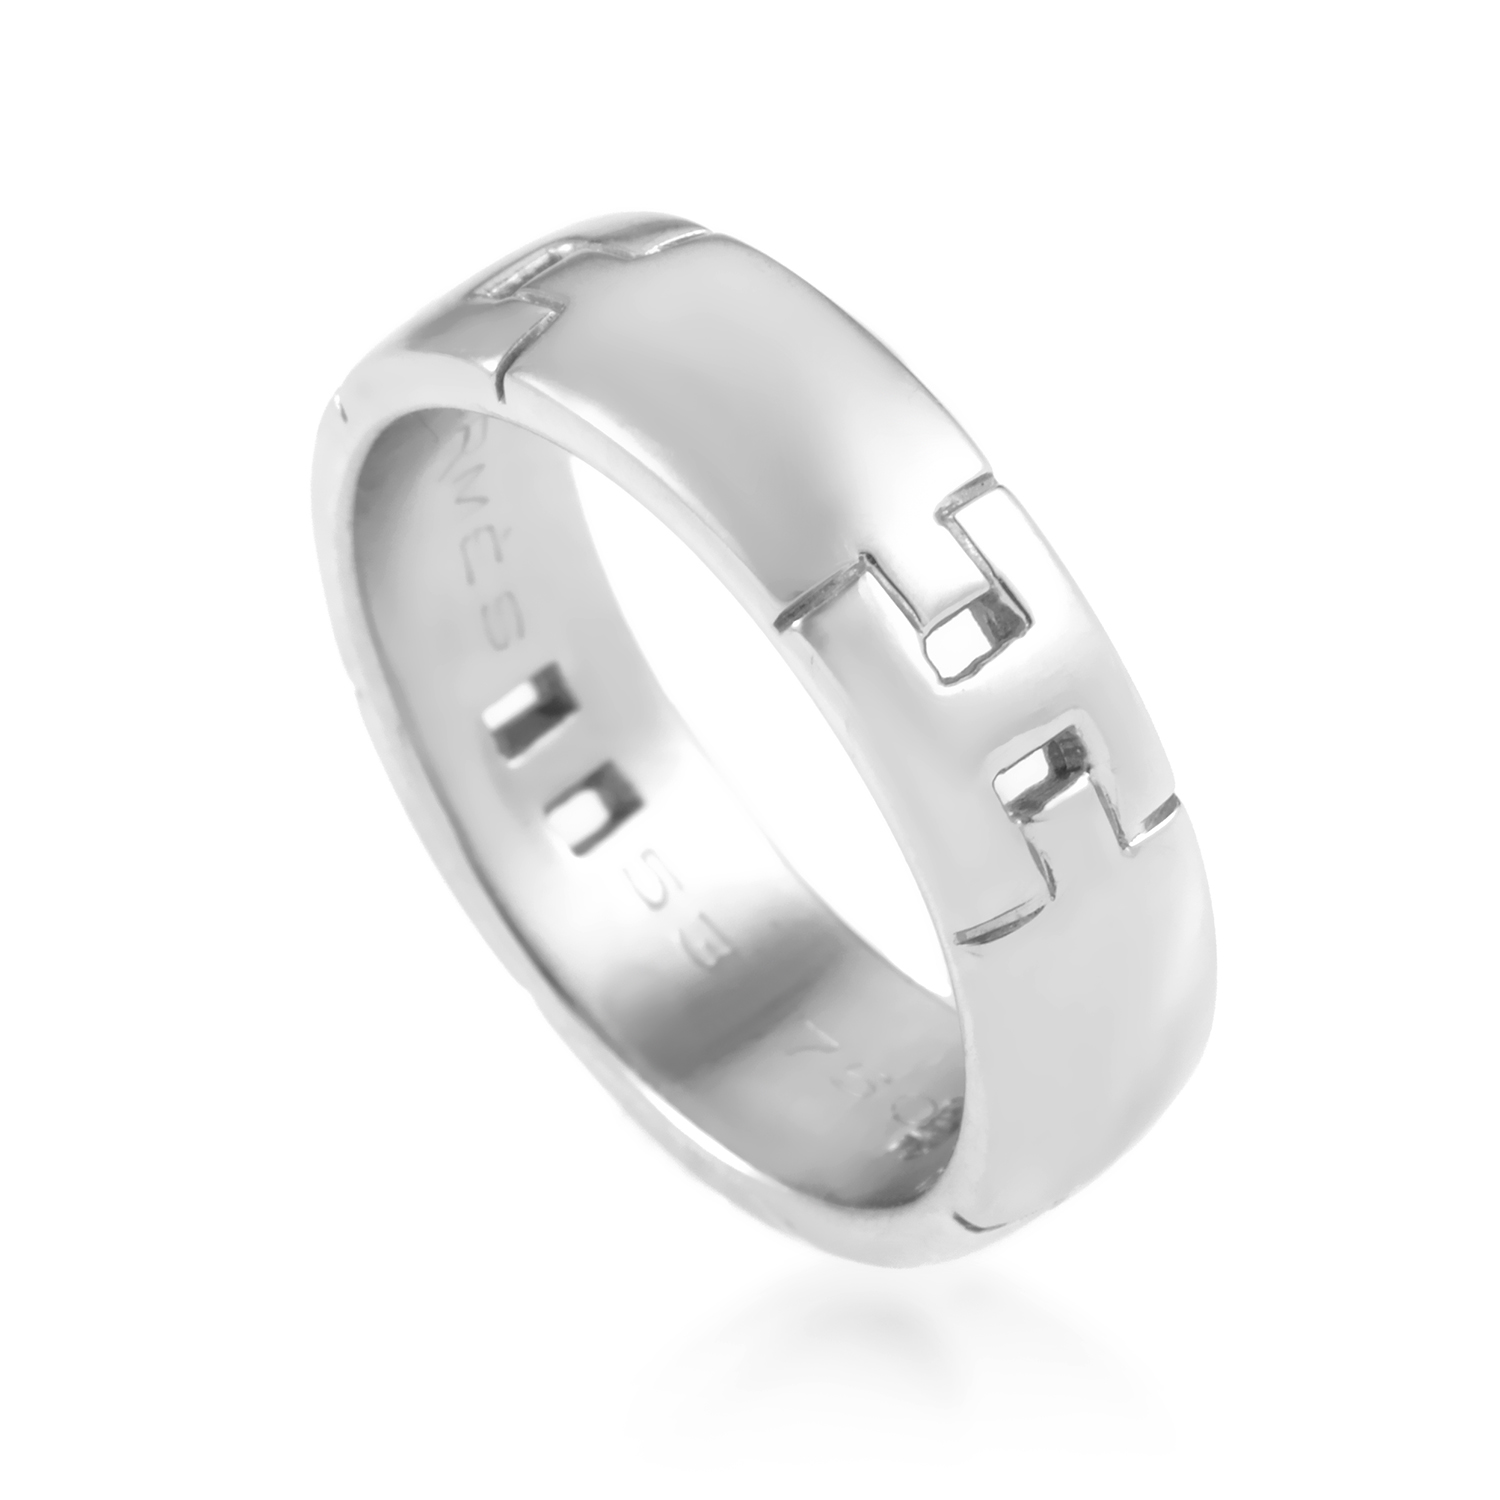 Hermès Women's 18K White Gold Hercules H Band Ring AK1B3764